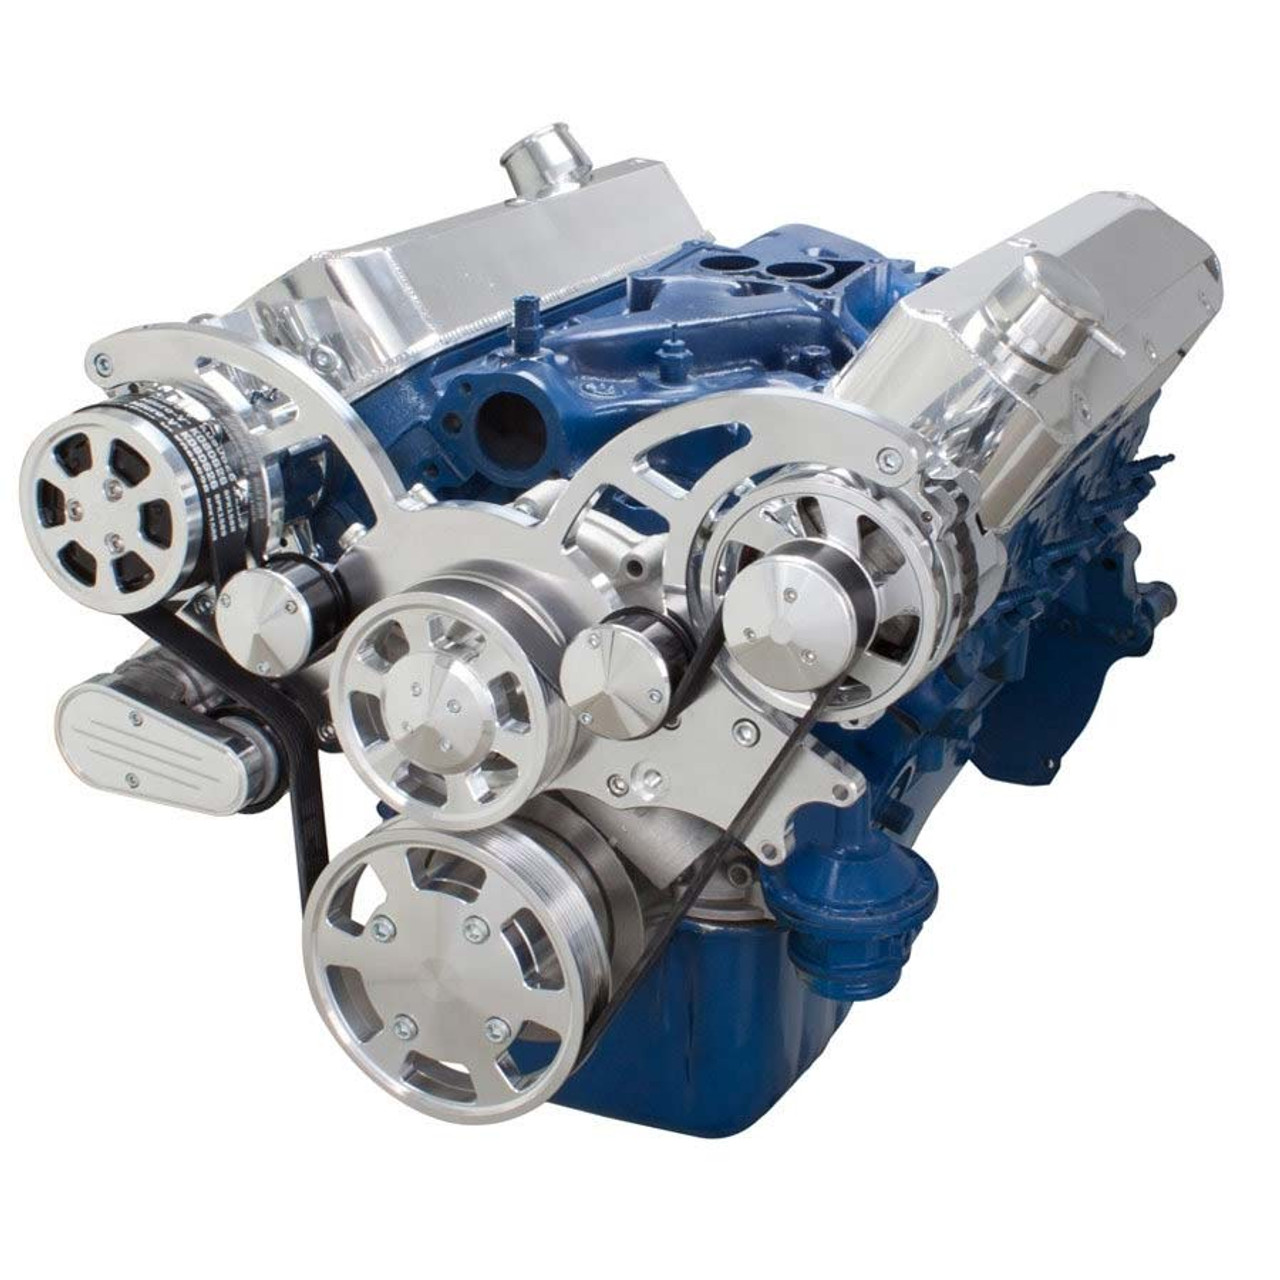 Polished Wraptor Serpentine System for Ford Small Block - AC & Alternator  Configuration ...